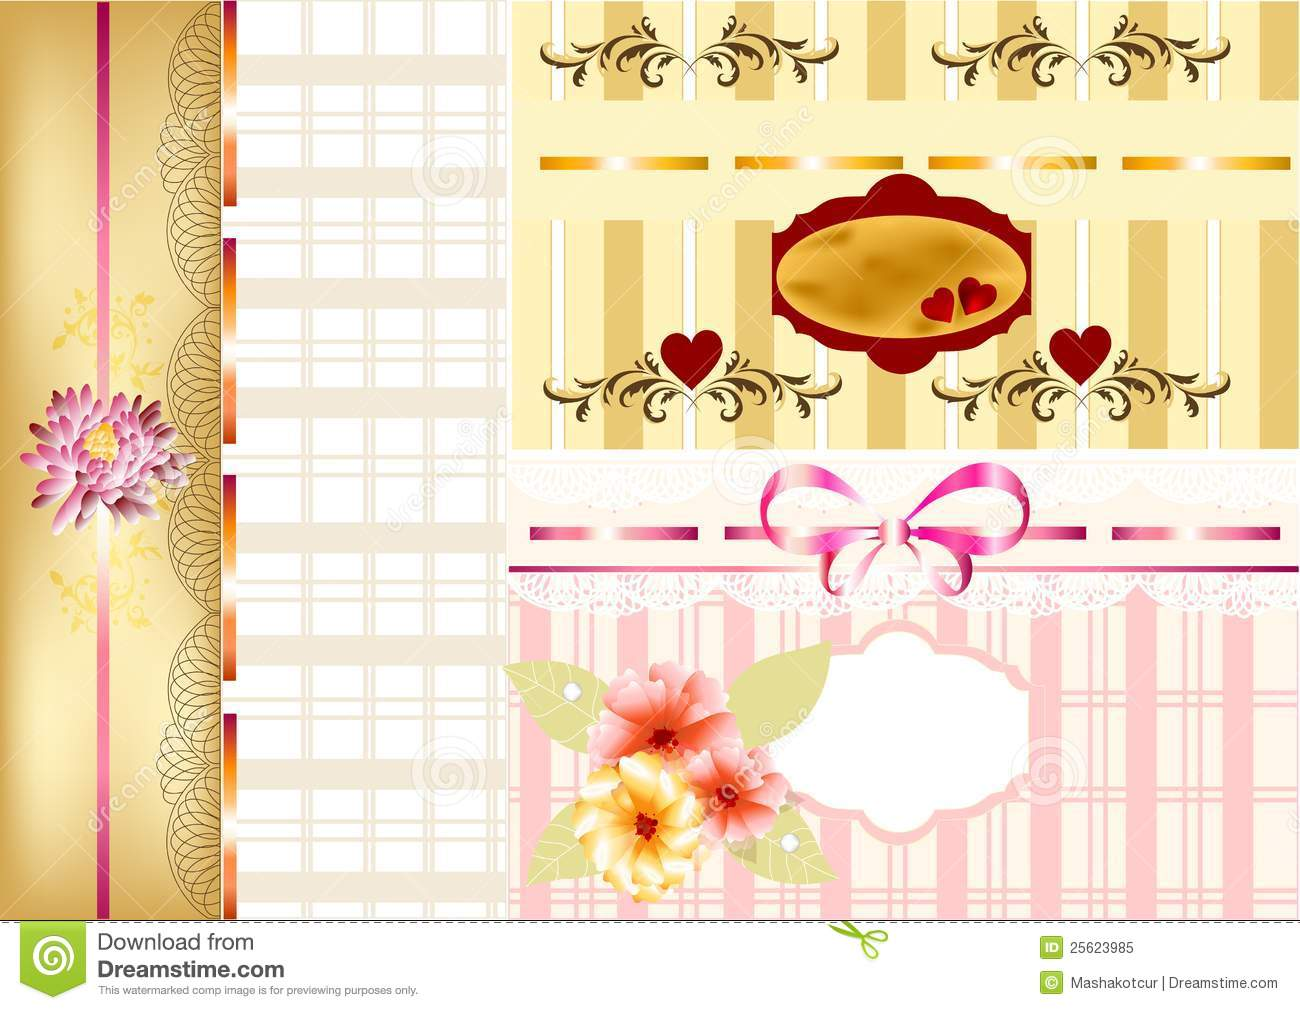 How to scrapbook greeting cards - Elegant Scrapbooking Set Or Greeting Cards